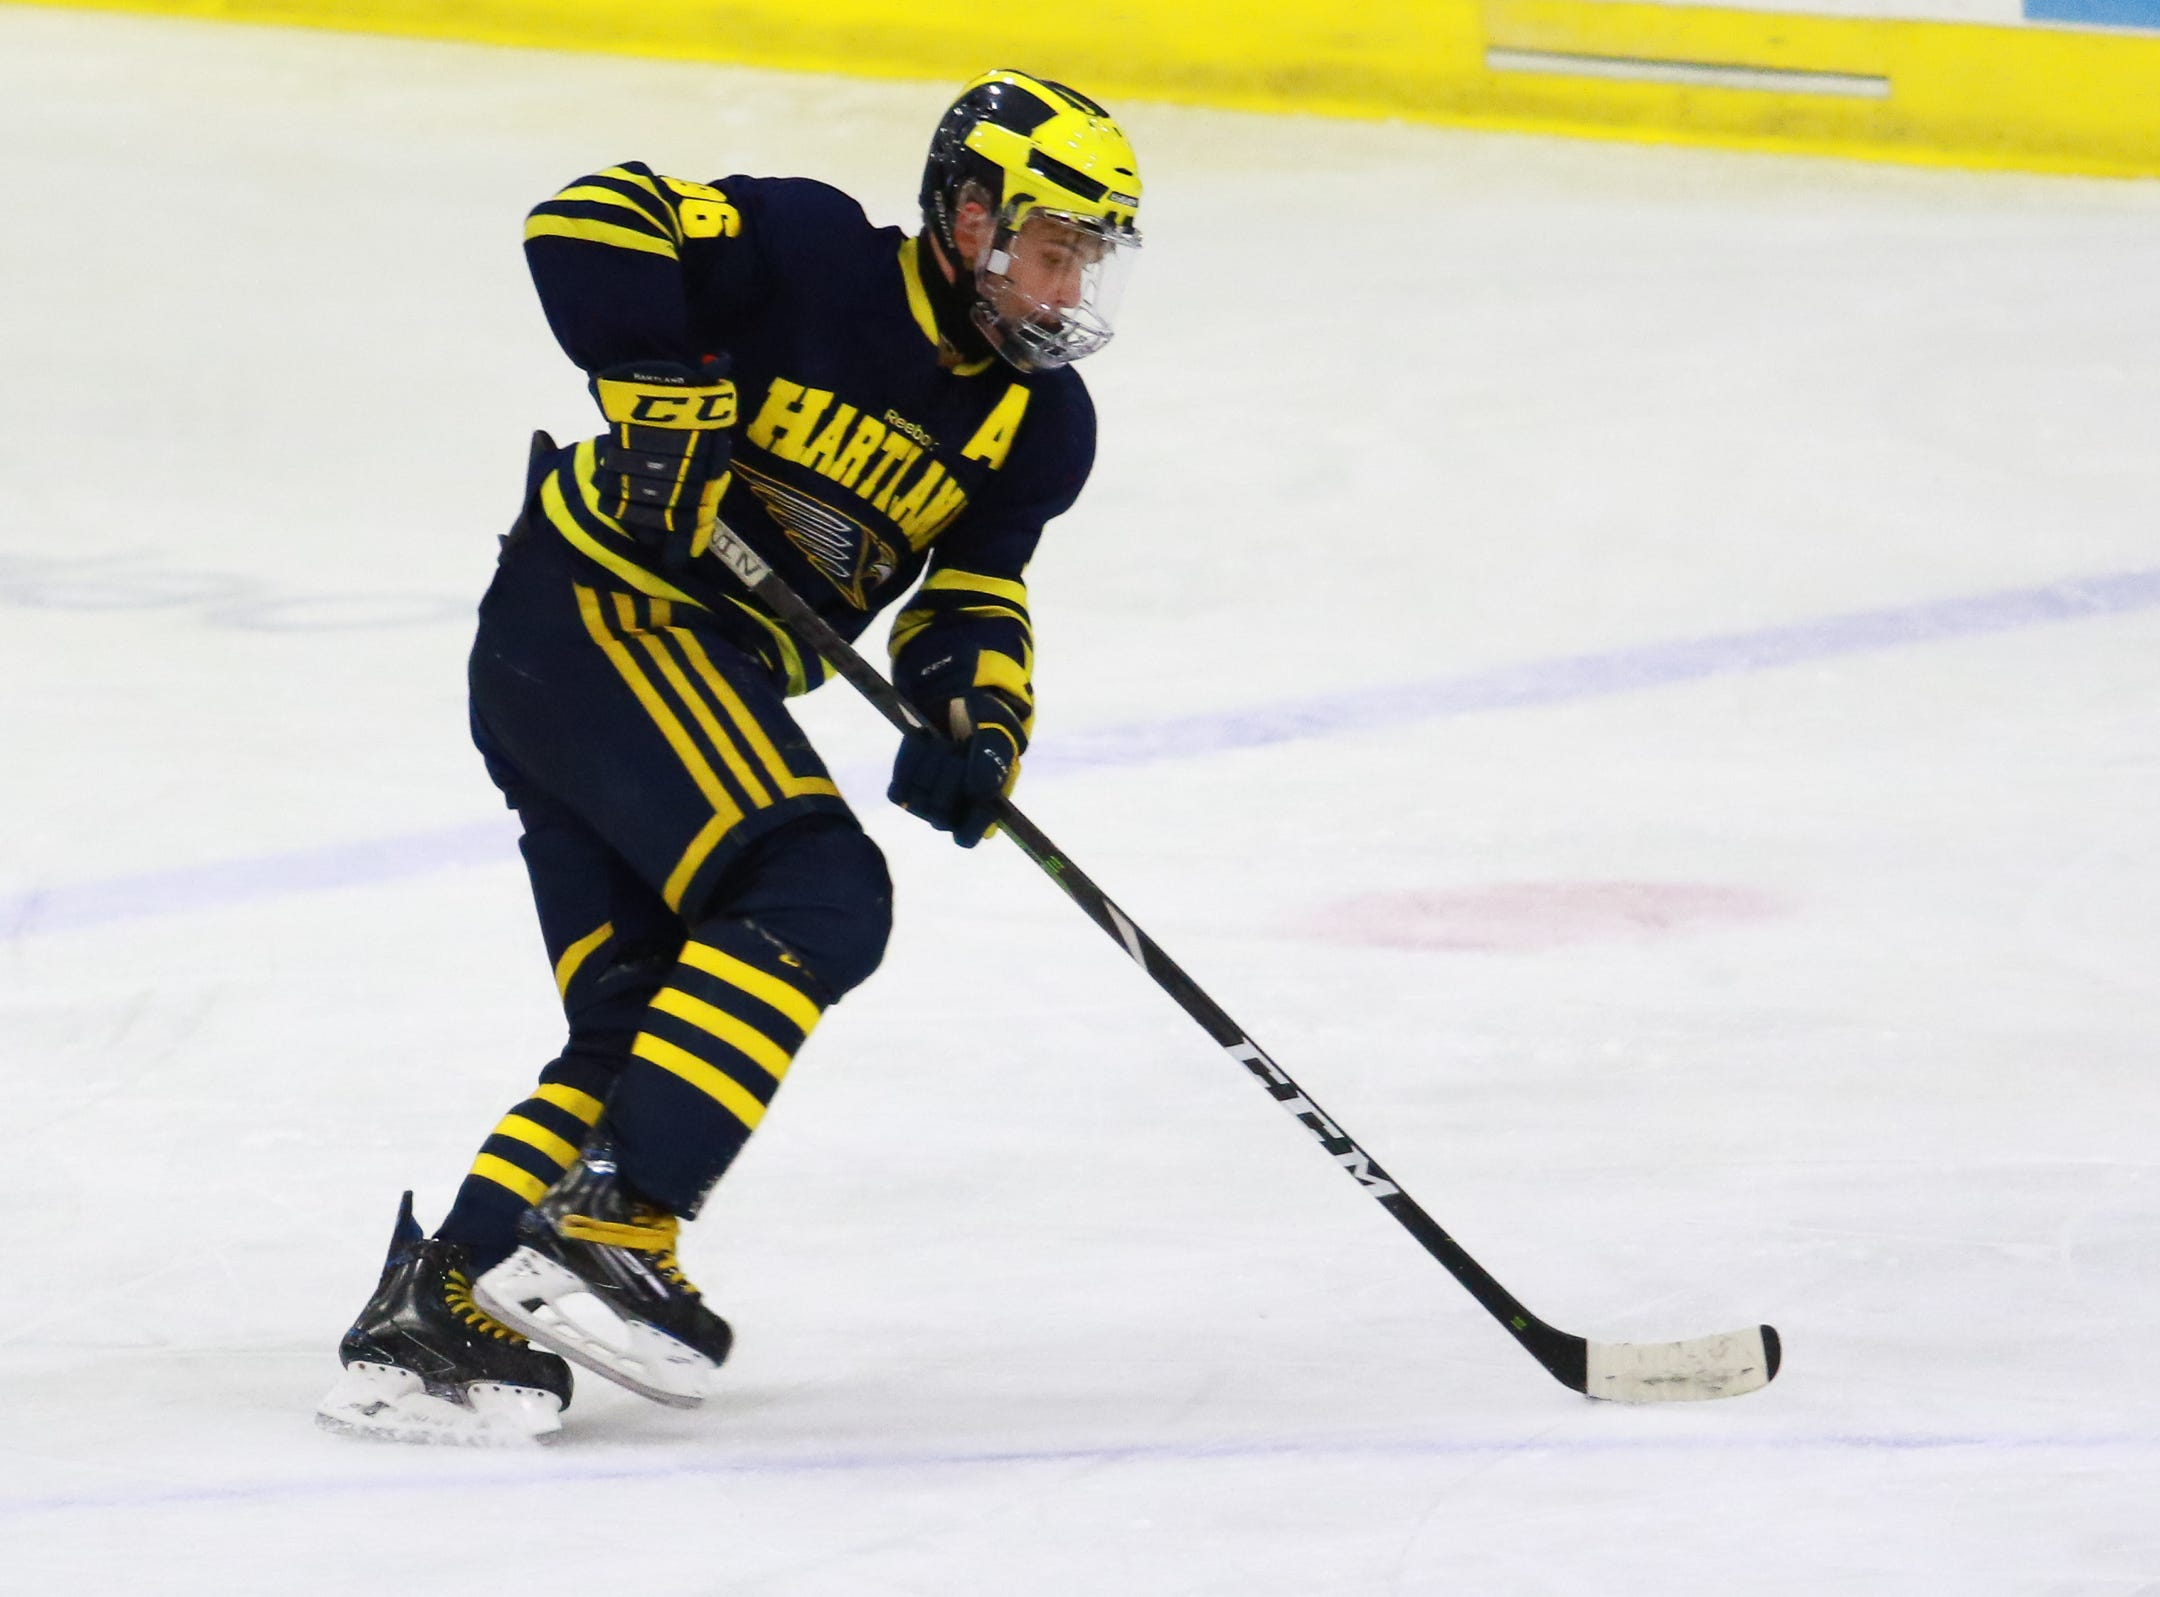 Hartland's Owen Pietila scored two goals eight seconds apart in a 4-0 victory over Trenton in the state Division 2 championship hockey game on Saturday, March 9, 2019 at USA Hockey Arena.